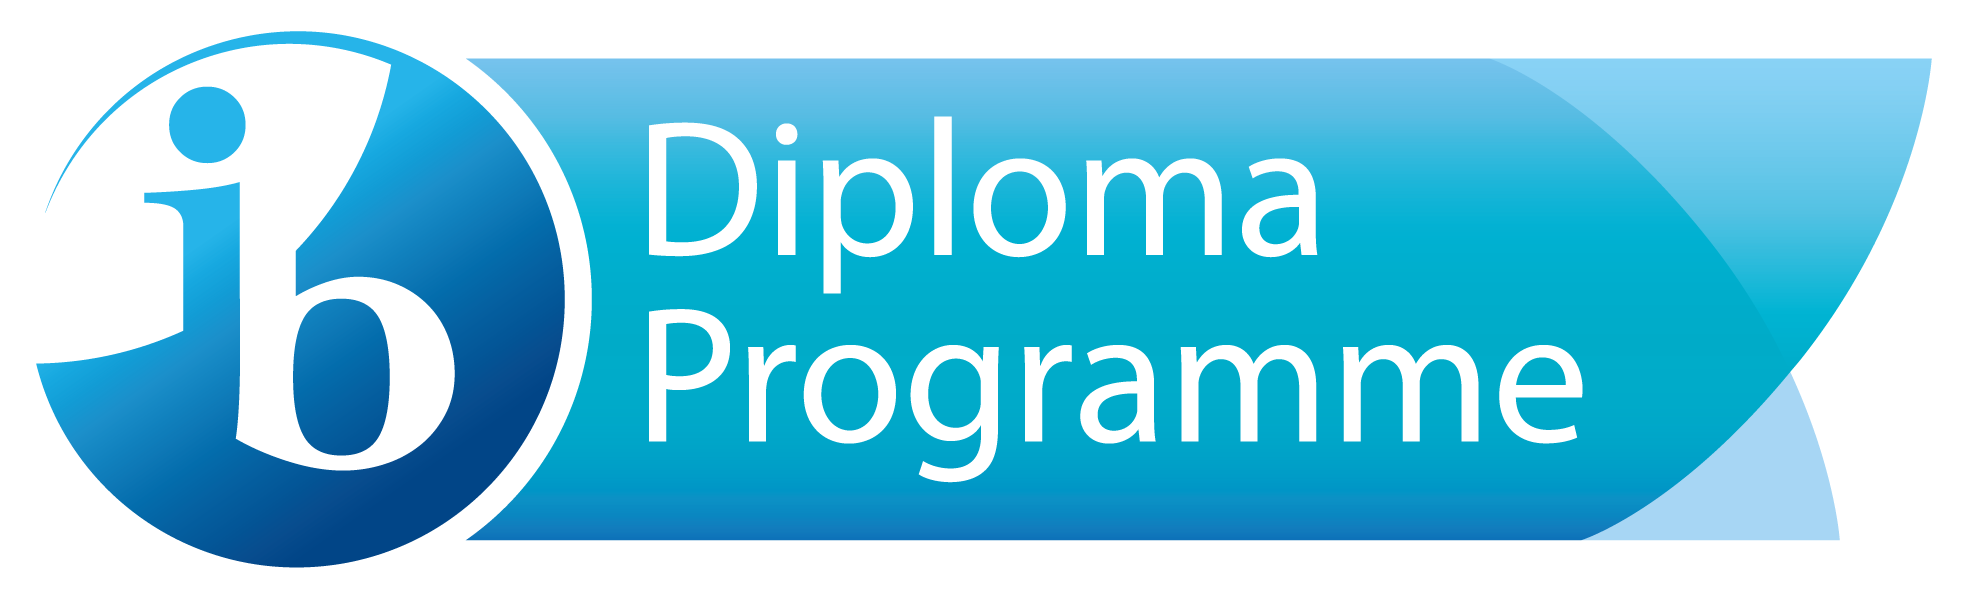 Link to International Baccalaureate Program